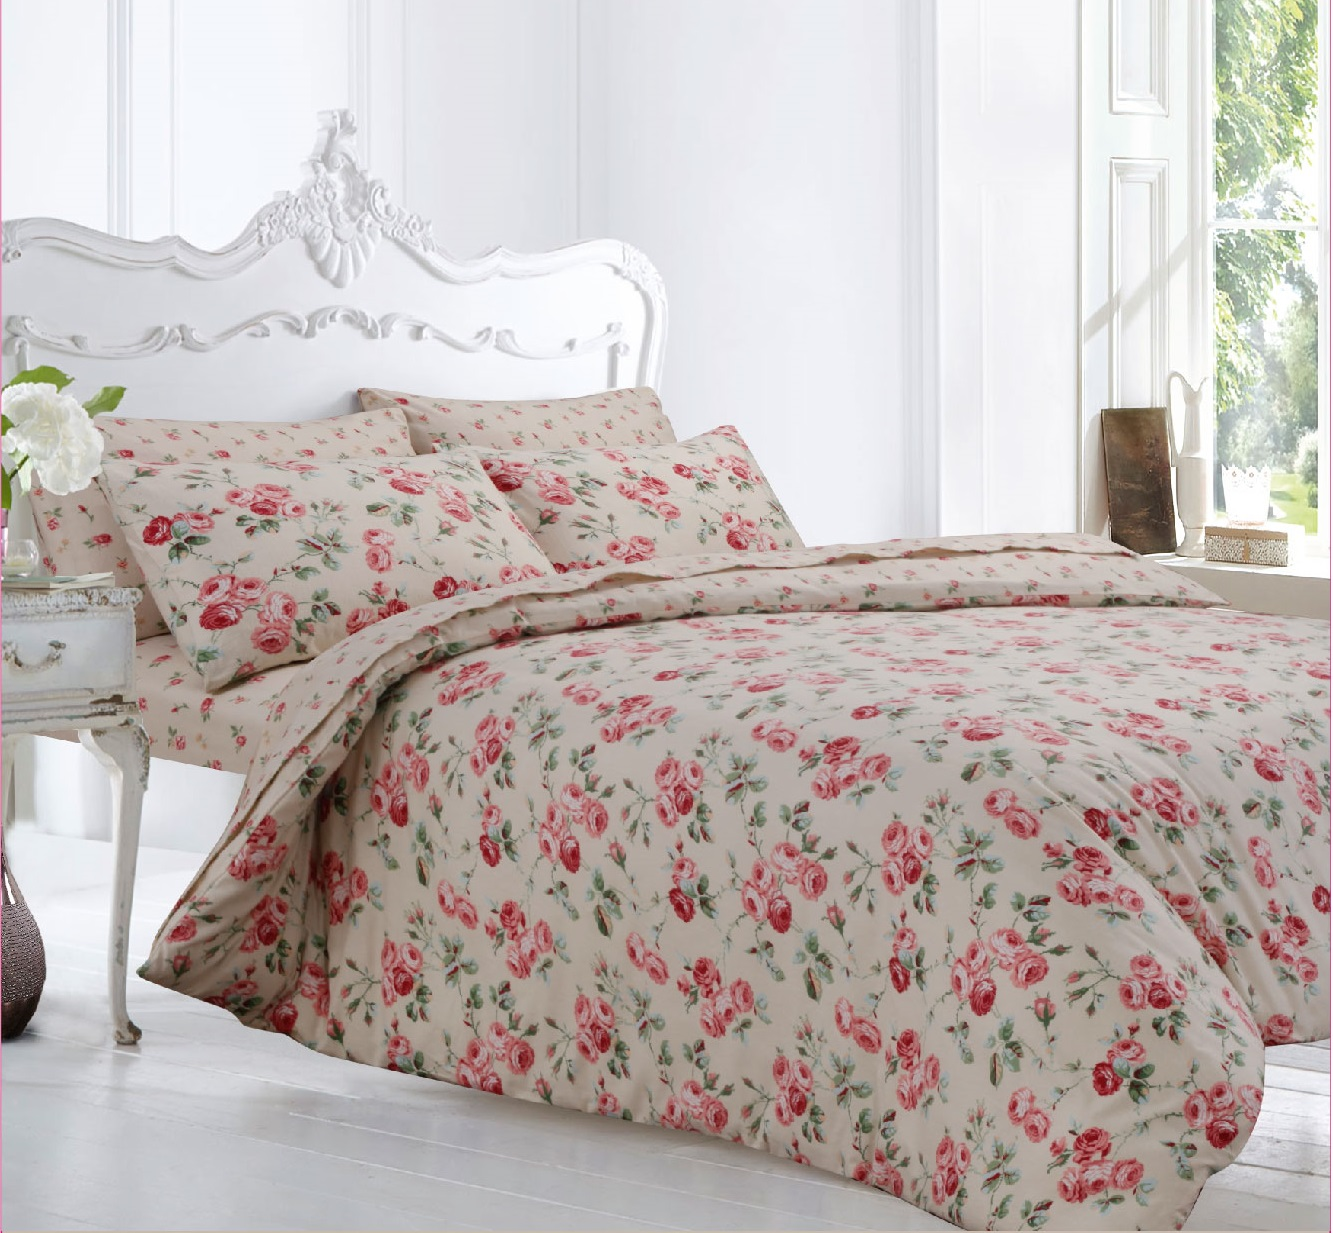 Peony Flannelette Duvet Cover Set From Century Textiles